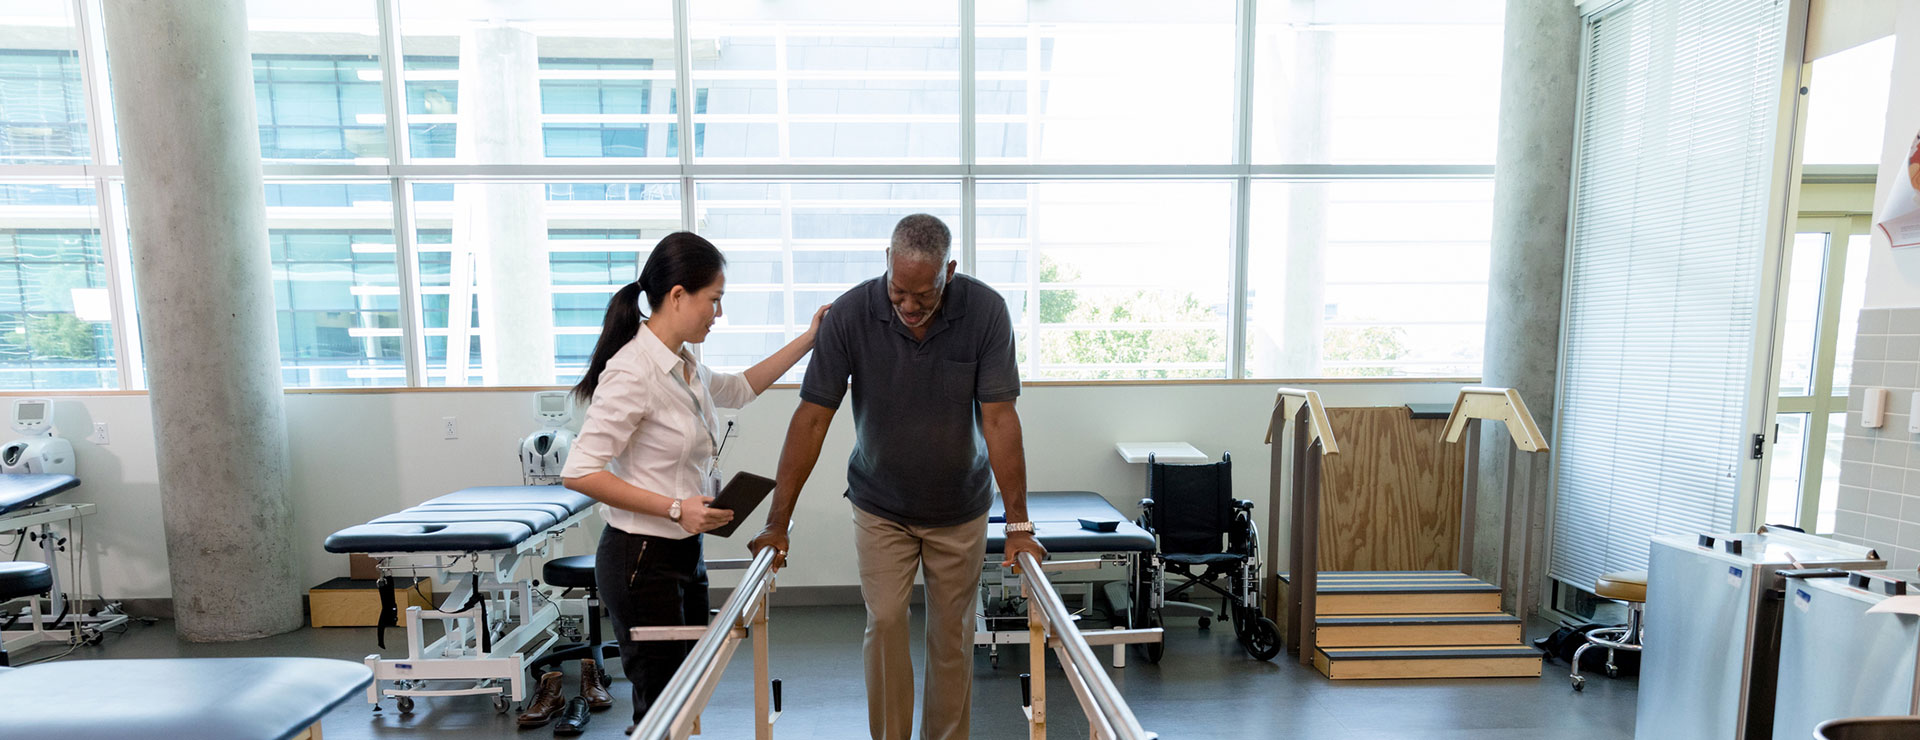 A physical therapist helps a man walk with the help of support bars.